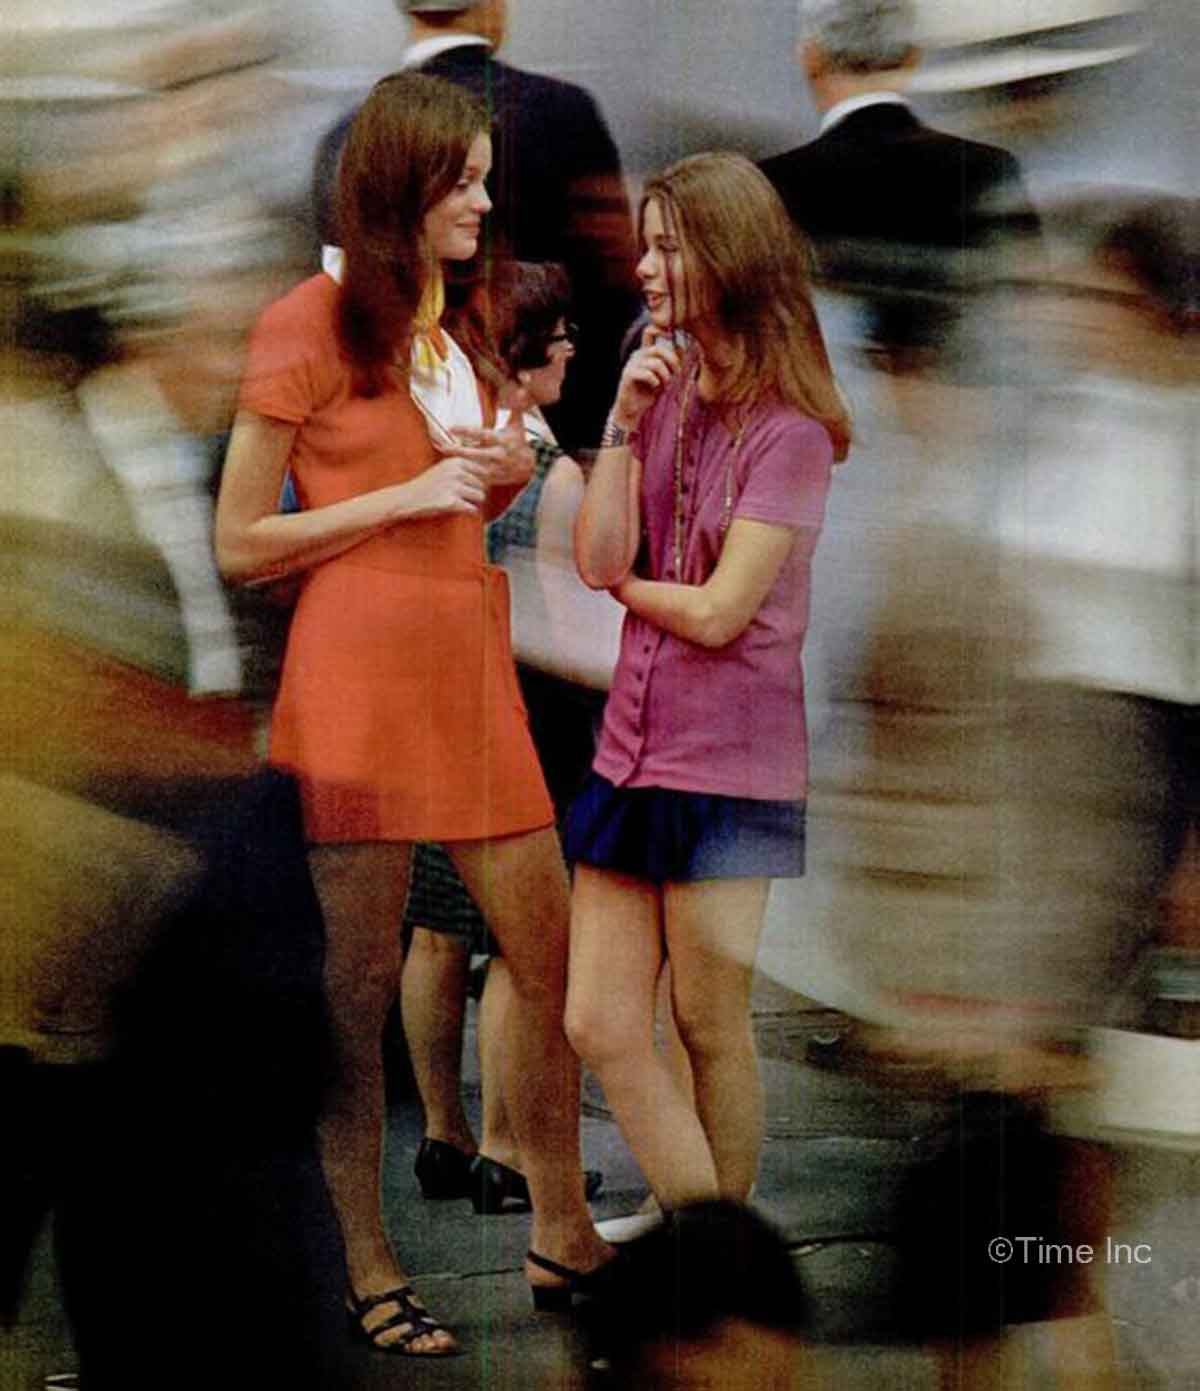 1960s-Fashion---The-New-York-Look-1969-b